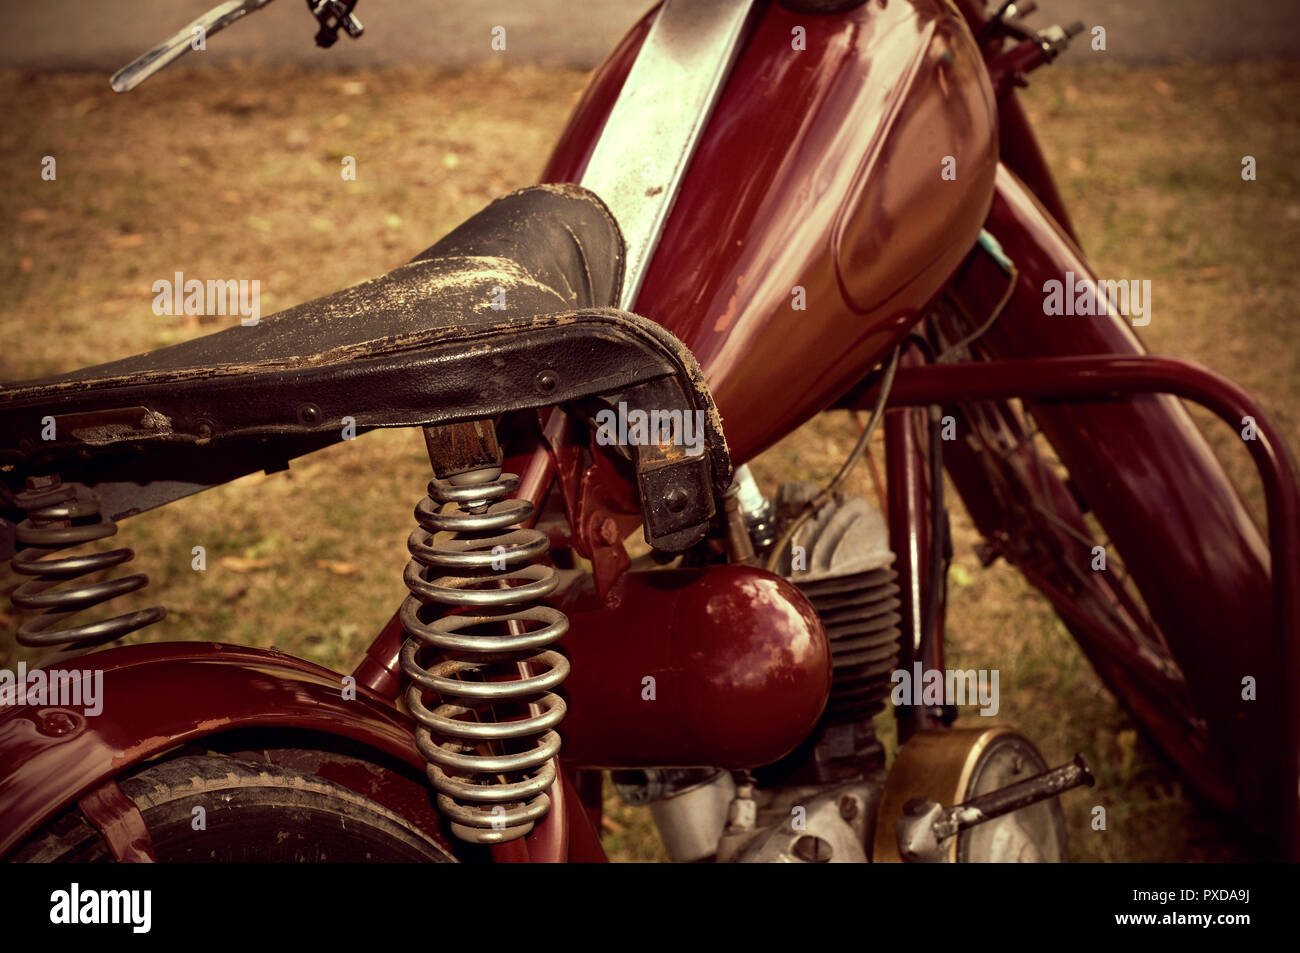 52245ae18a30e Beautiful Classic Antique Motorcycle with Weathered Leather Seat ...